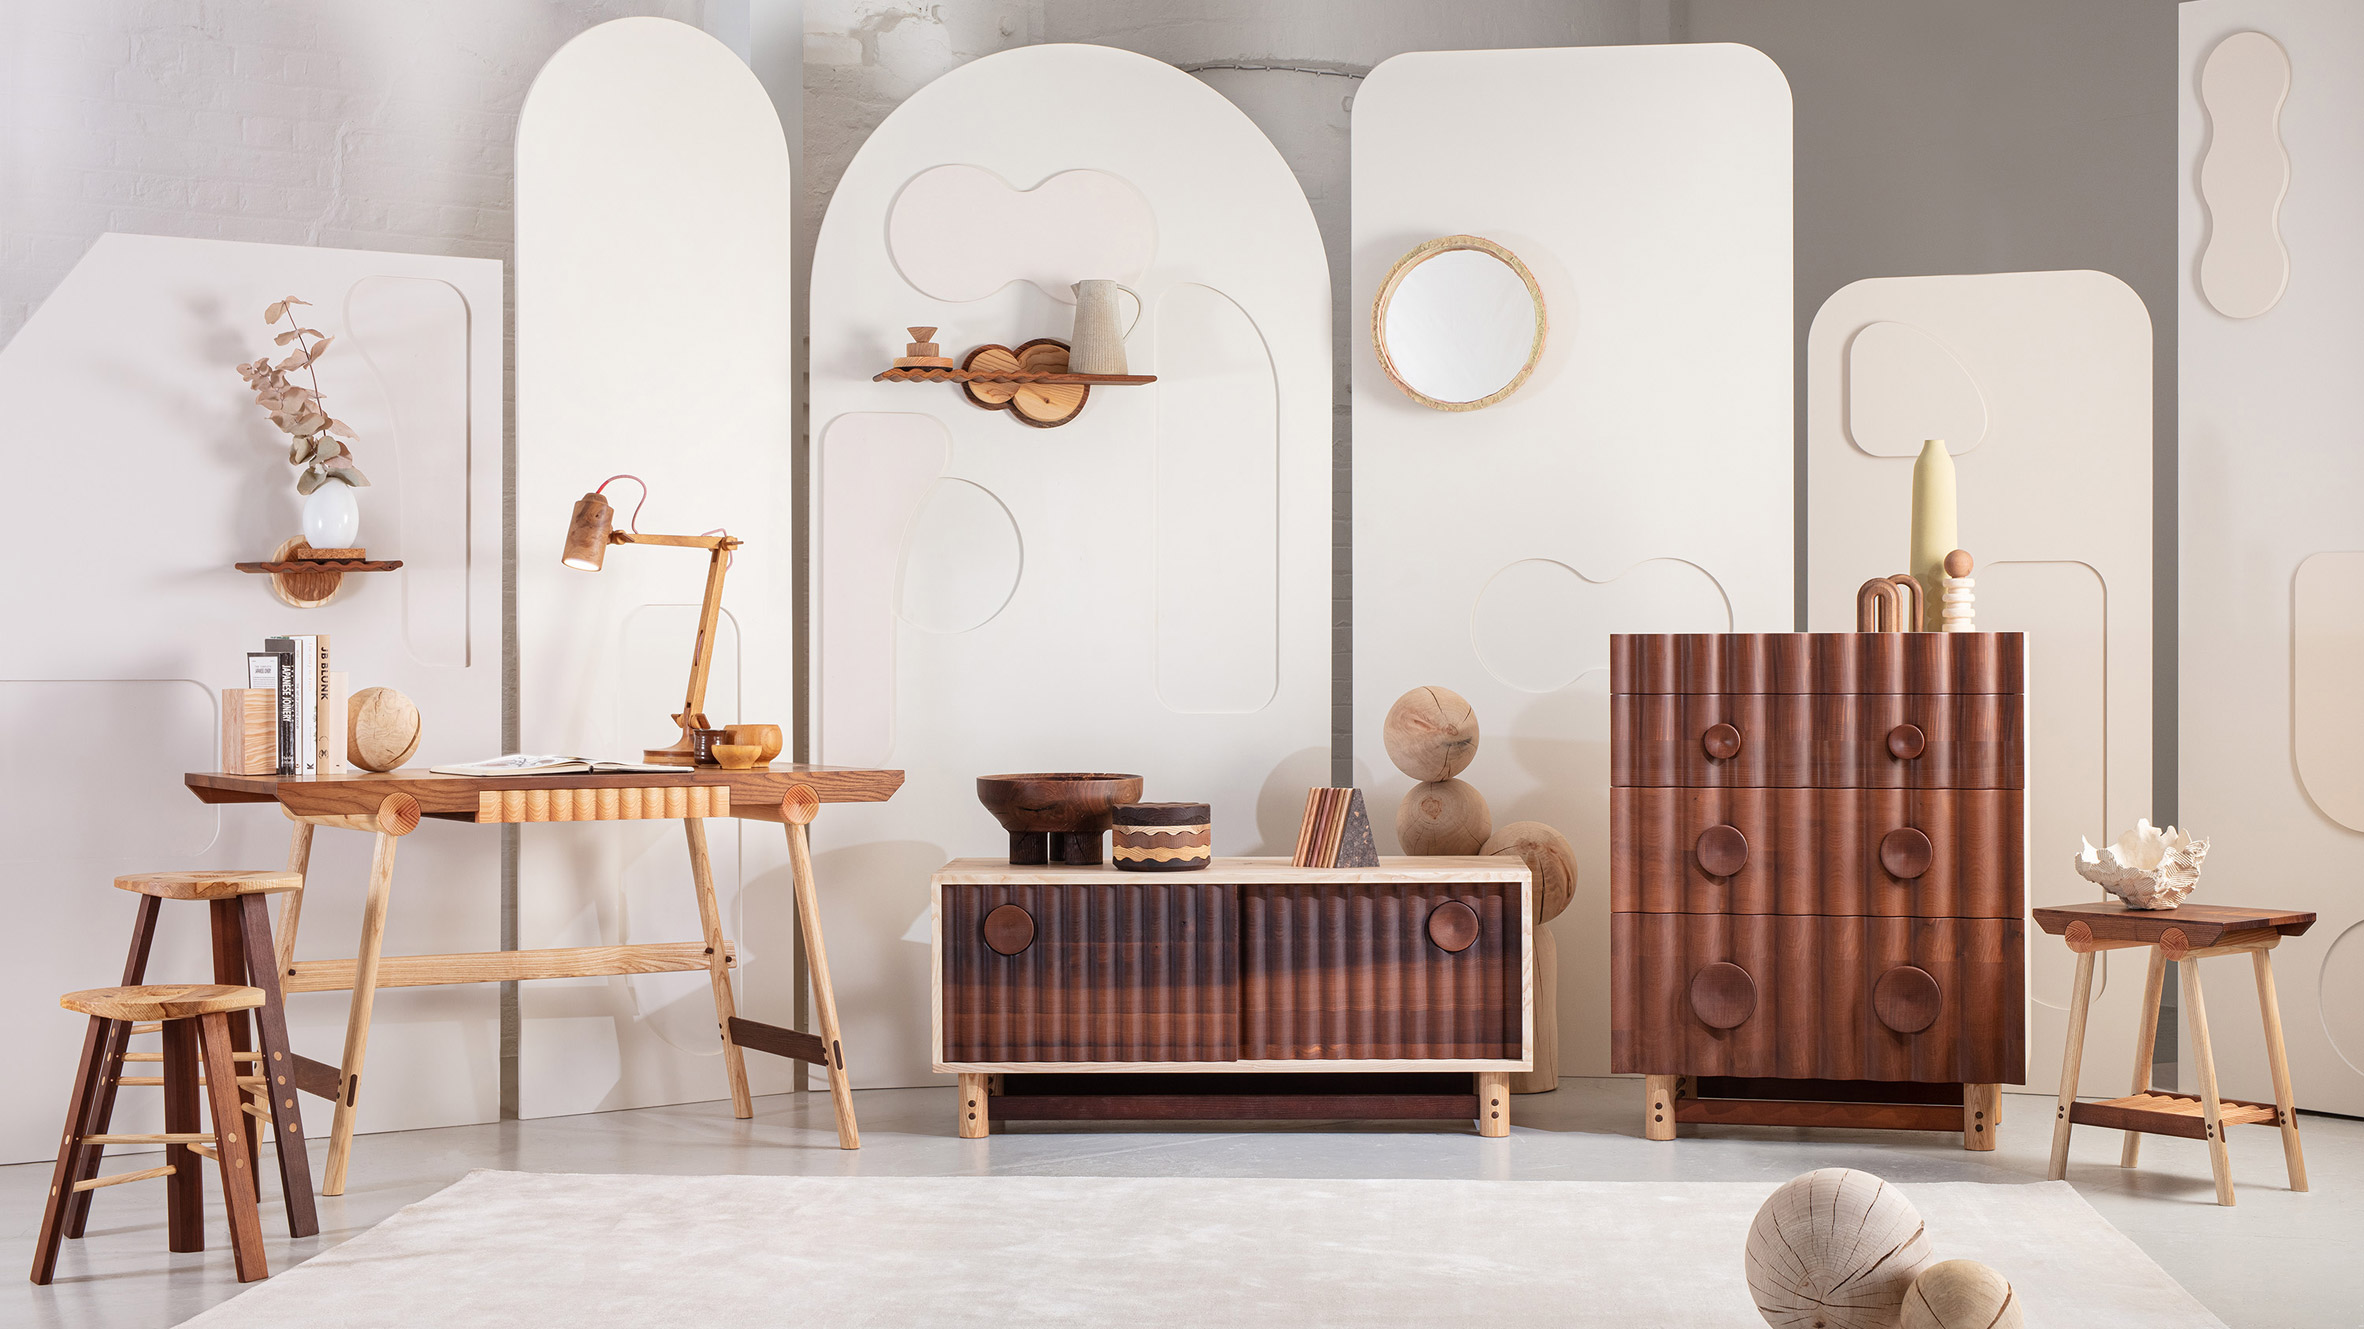 Jan Hendzel Studio's Bowater collection made using British hardwood